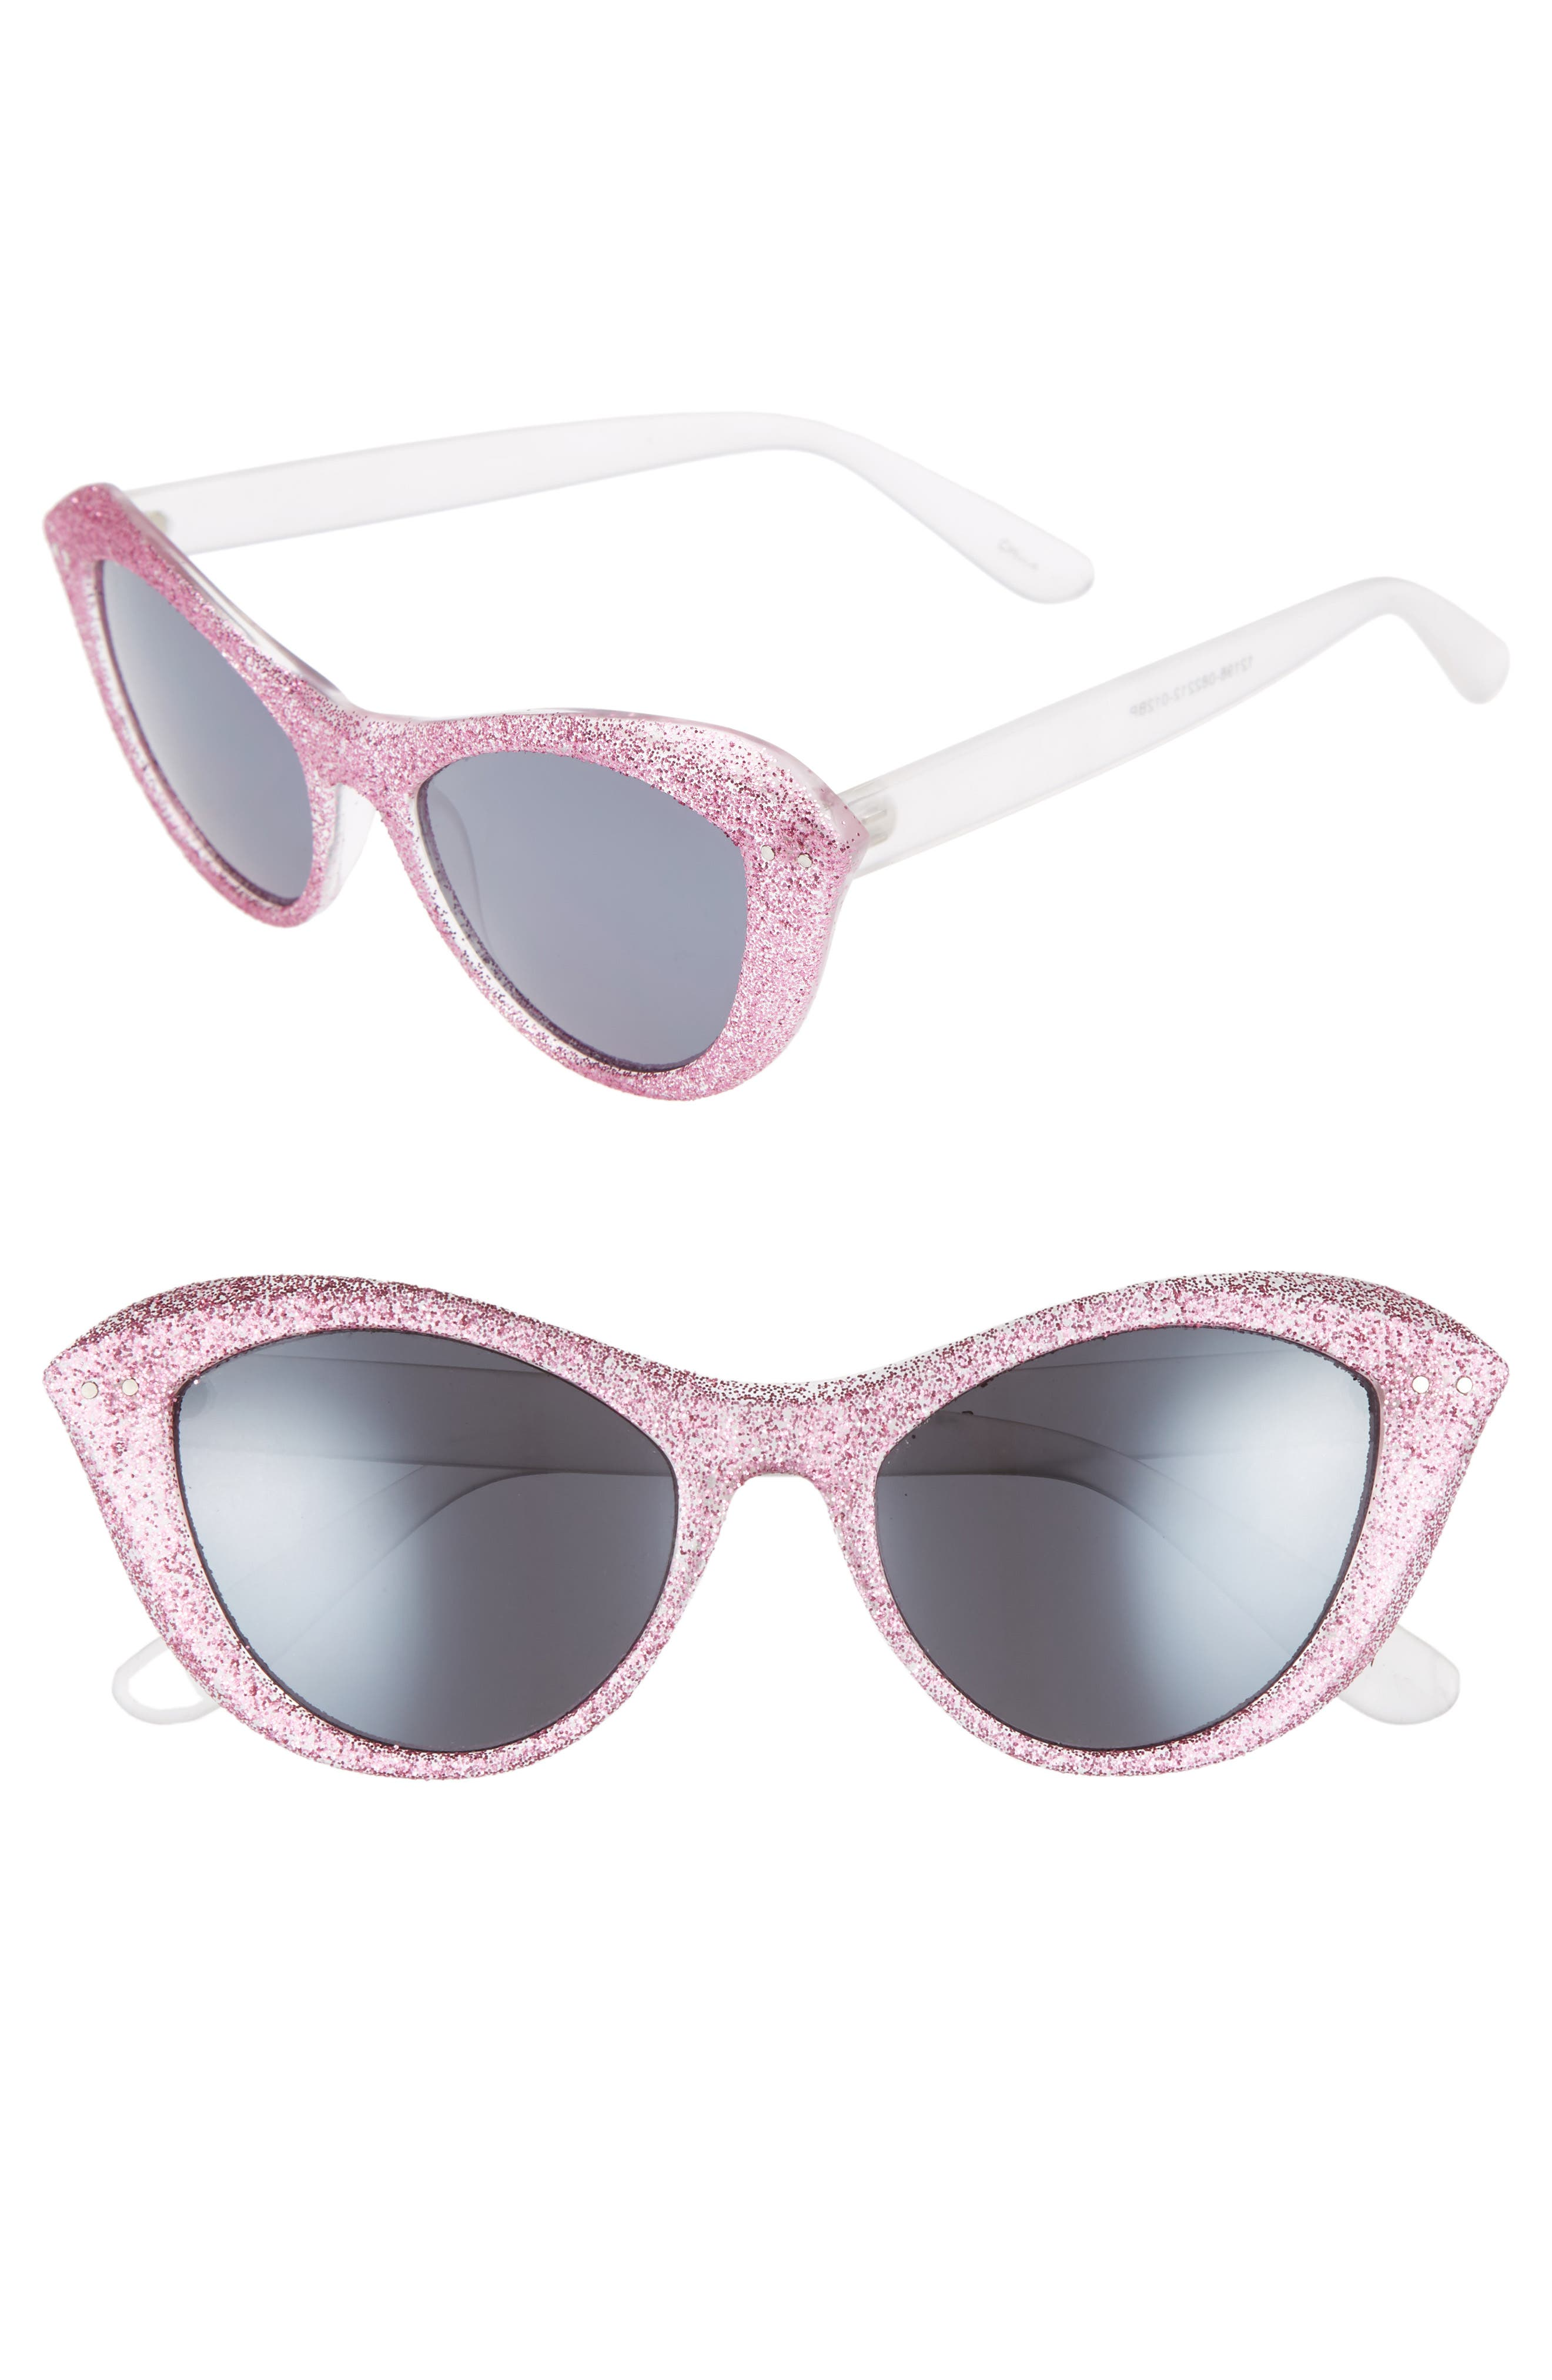 50mm Retro Cat Eye Sunglasses,                         Main,                         color, 100